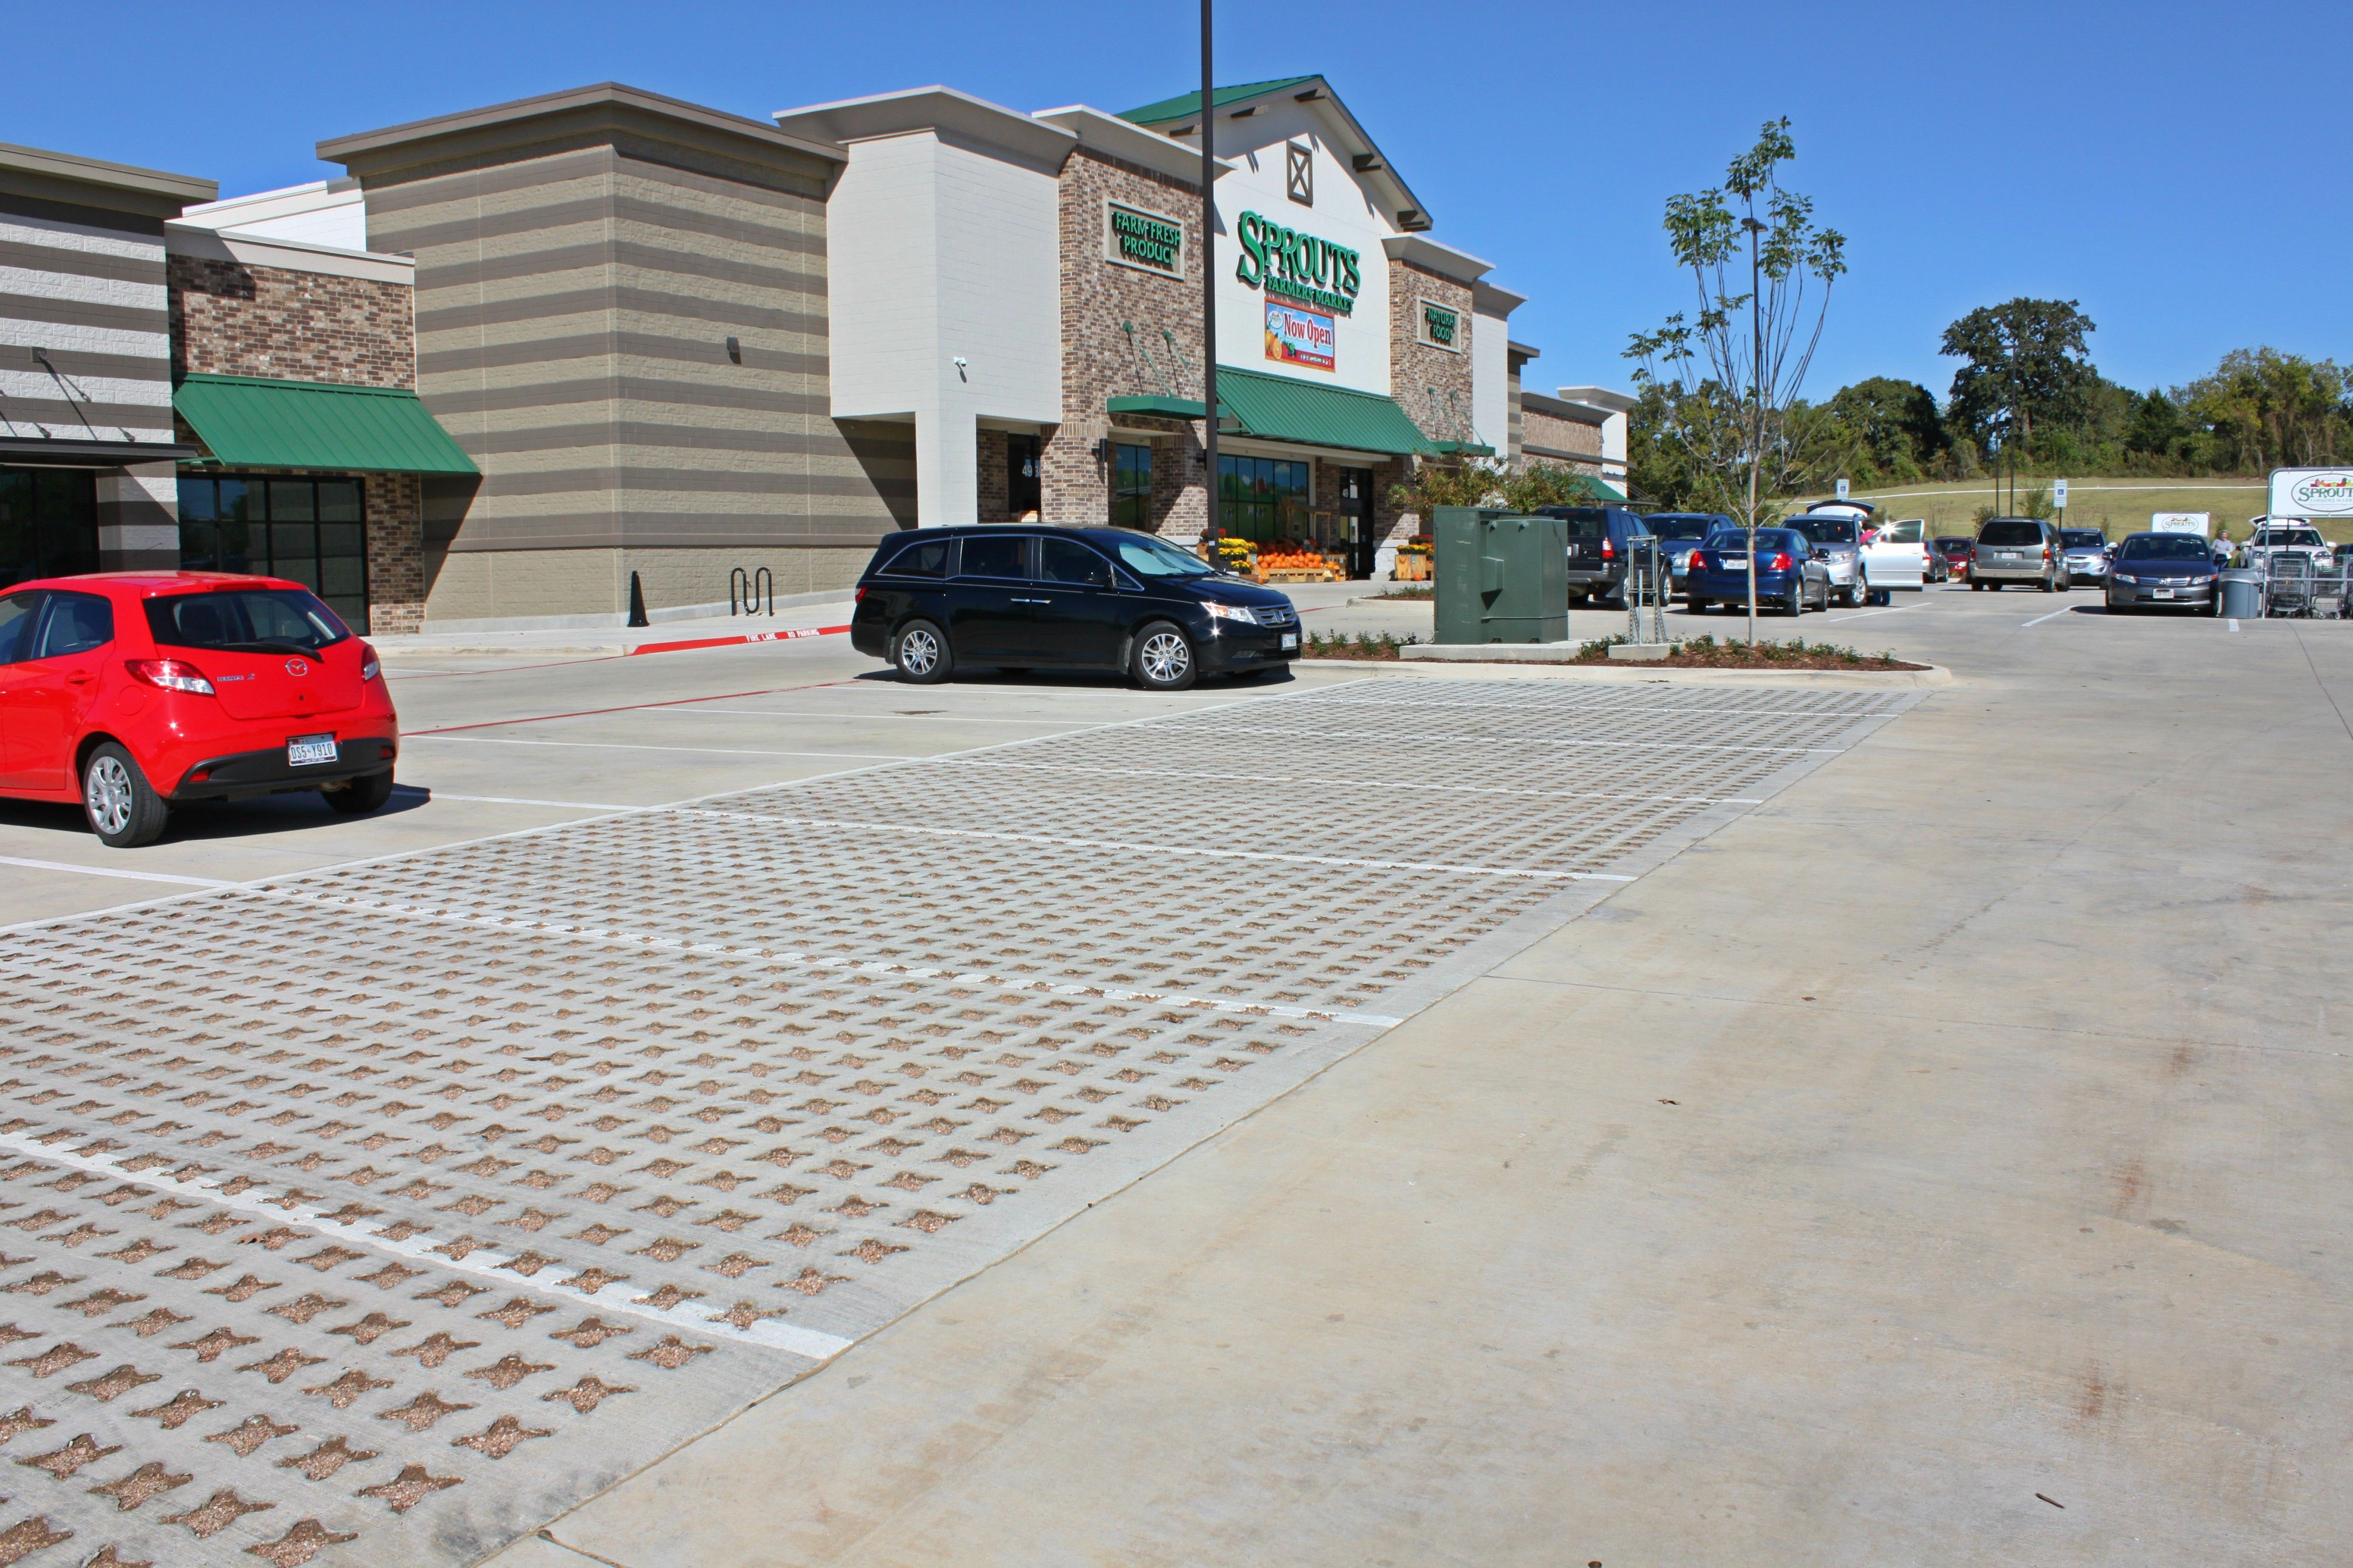 Grasscrete Stone Filled pervious concrete parking lot at Sprouts Farmers Market in Denton, Texas, was installed for low maintenance and to control storm water.